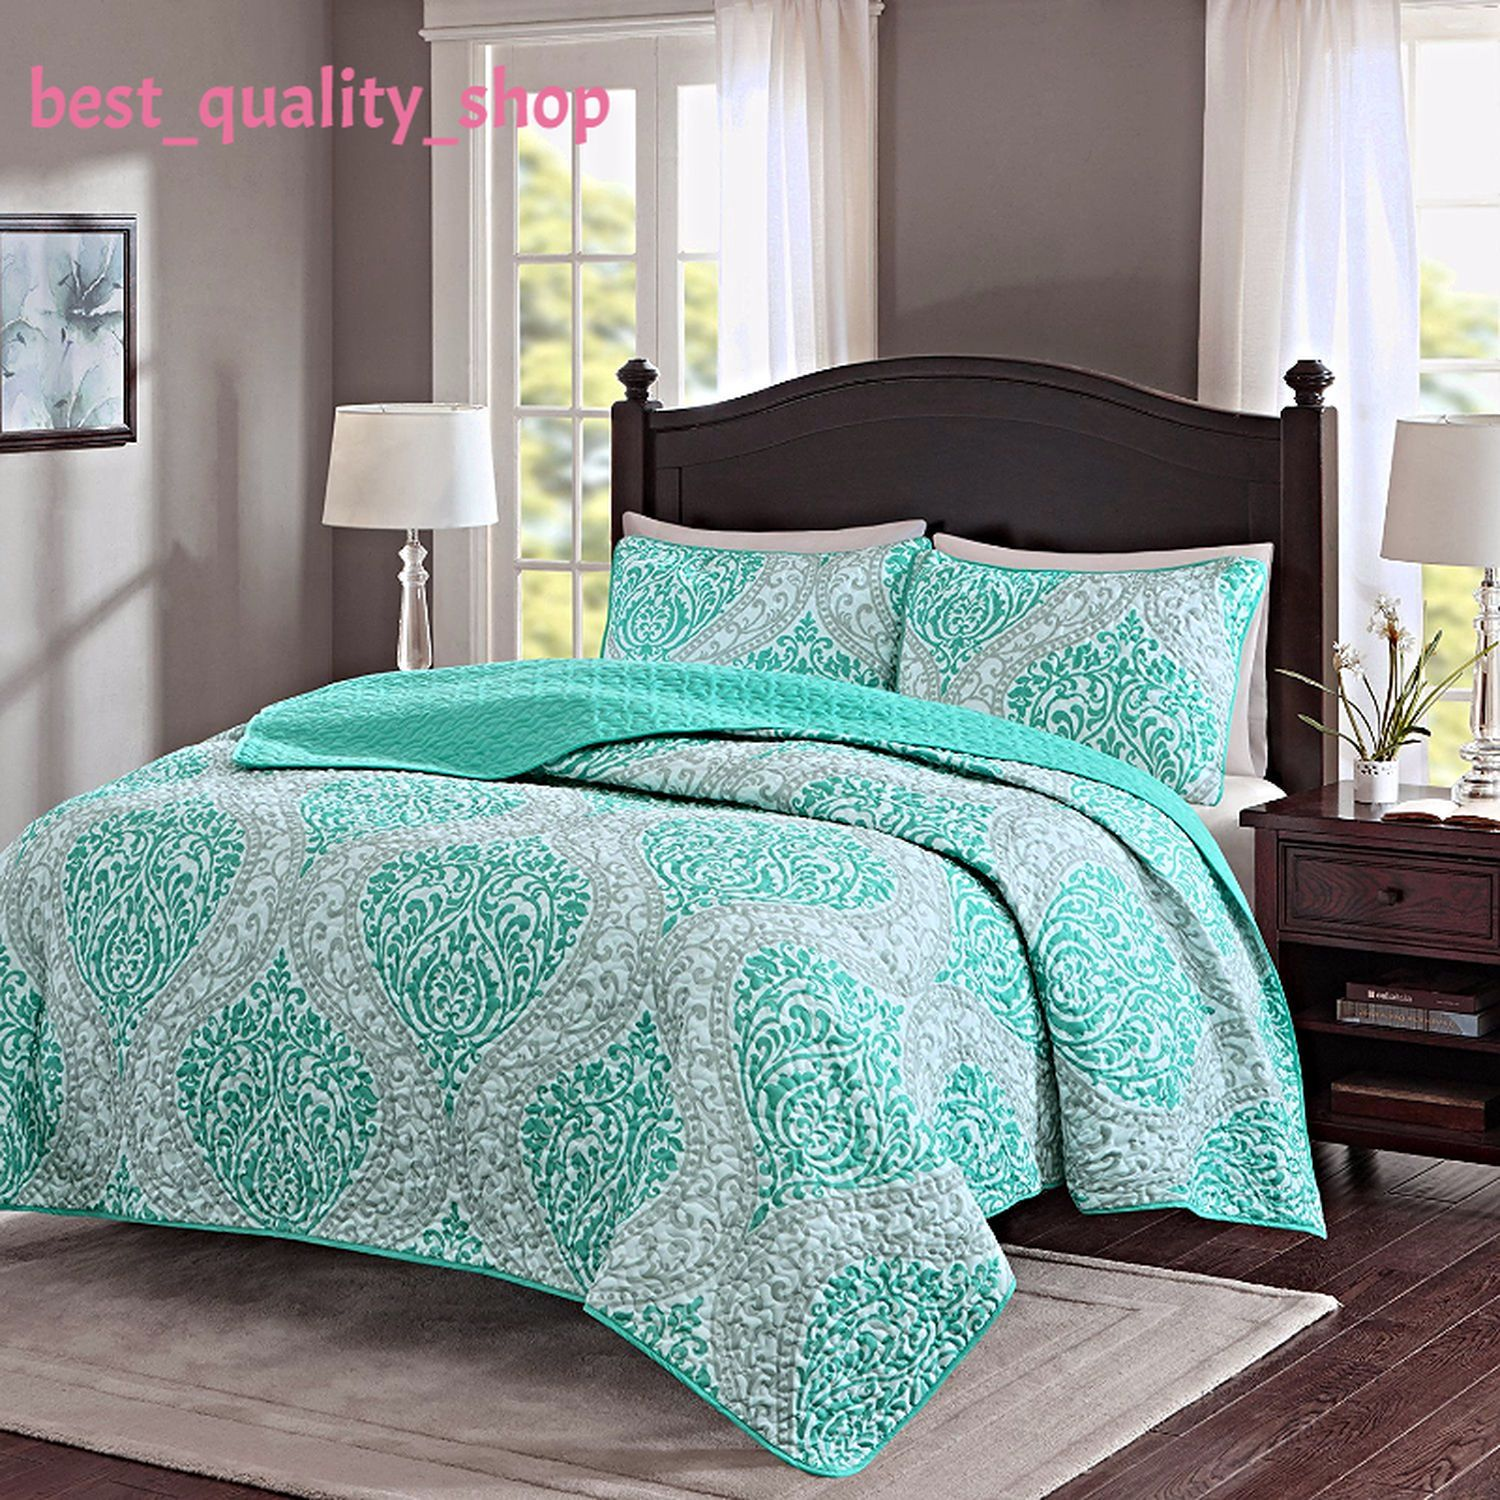 Teal And Grey Quilt Set Printed Damask Pattern Full X2f Queen Size 3 Piece Bedspread Features Teal And Gre Comforter Sets Bed Comforter Sets Teal Bedding